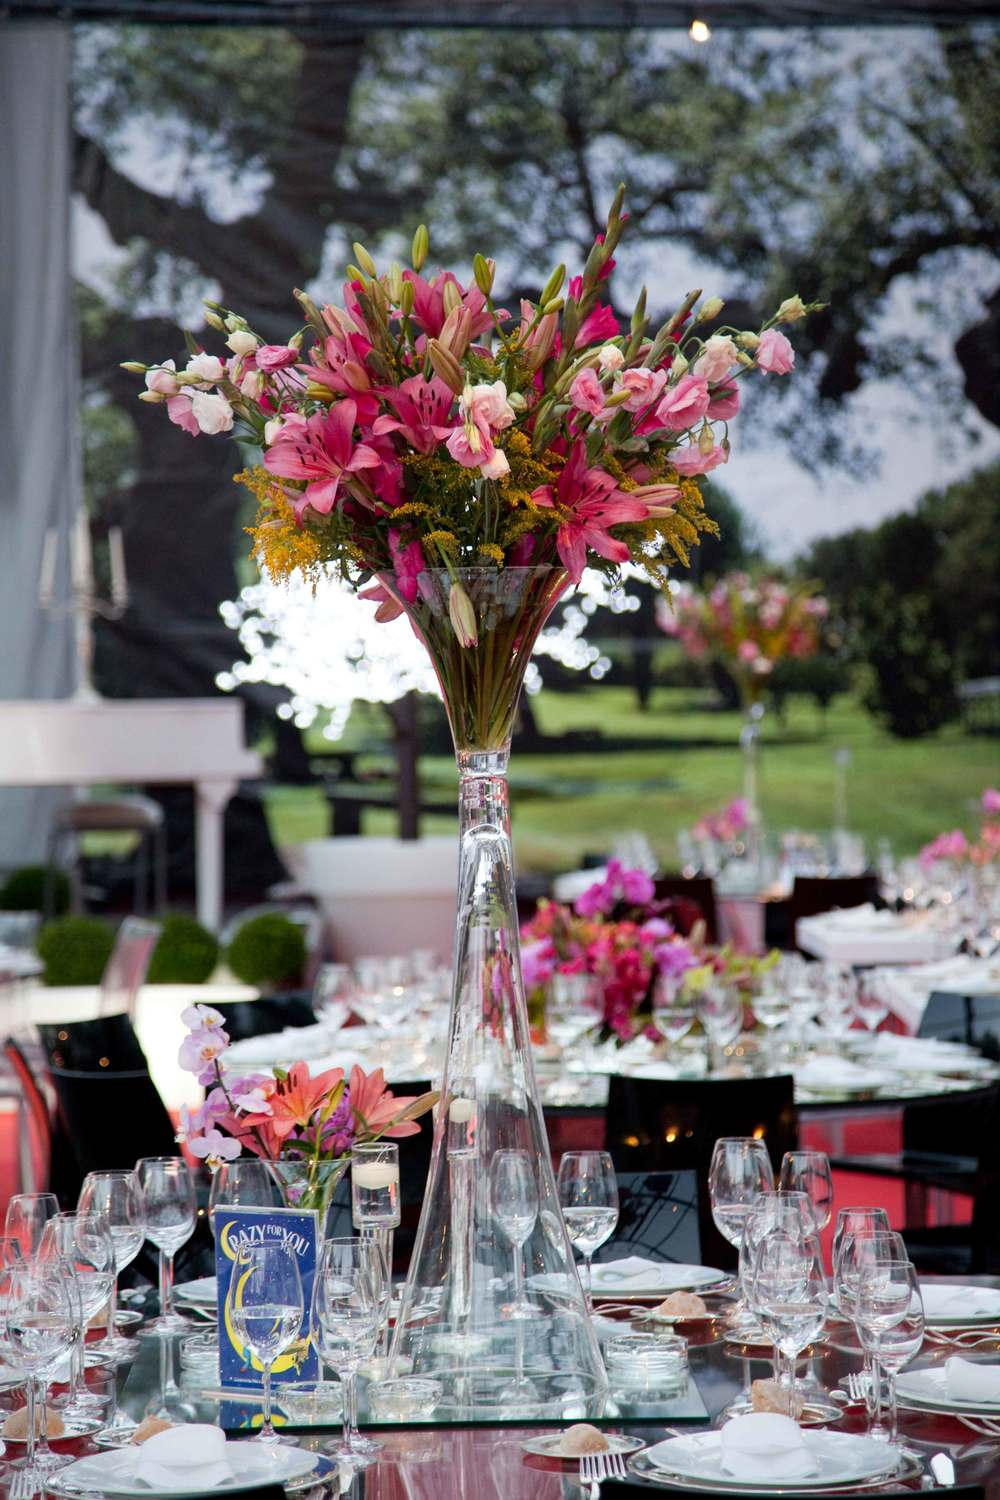 Flower decor for wedding table by The Wedding Portugal team.jpg